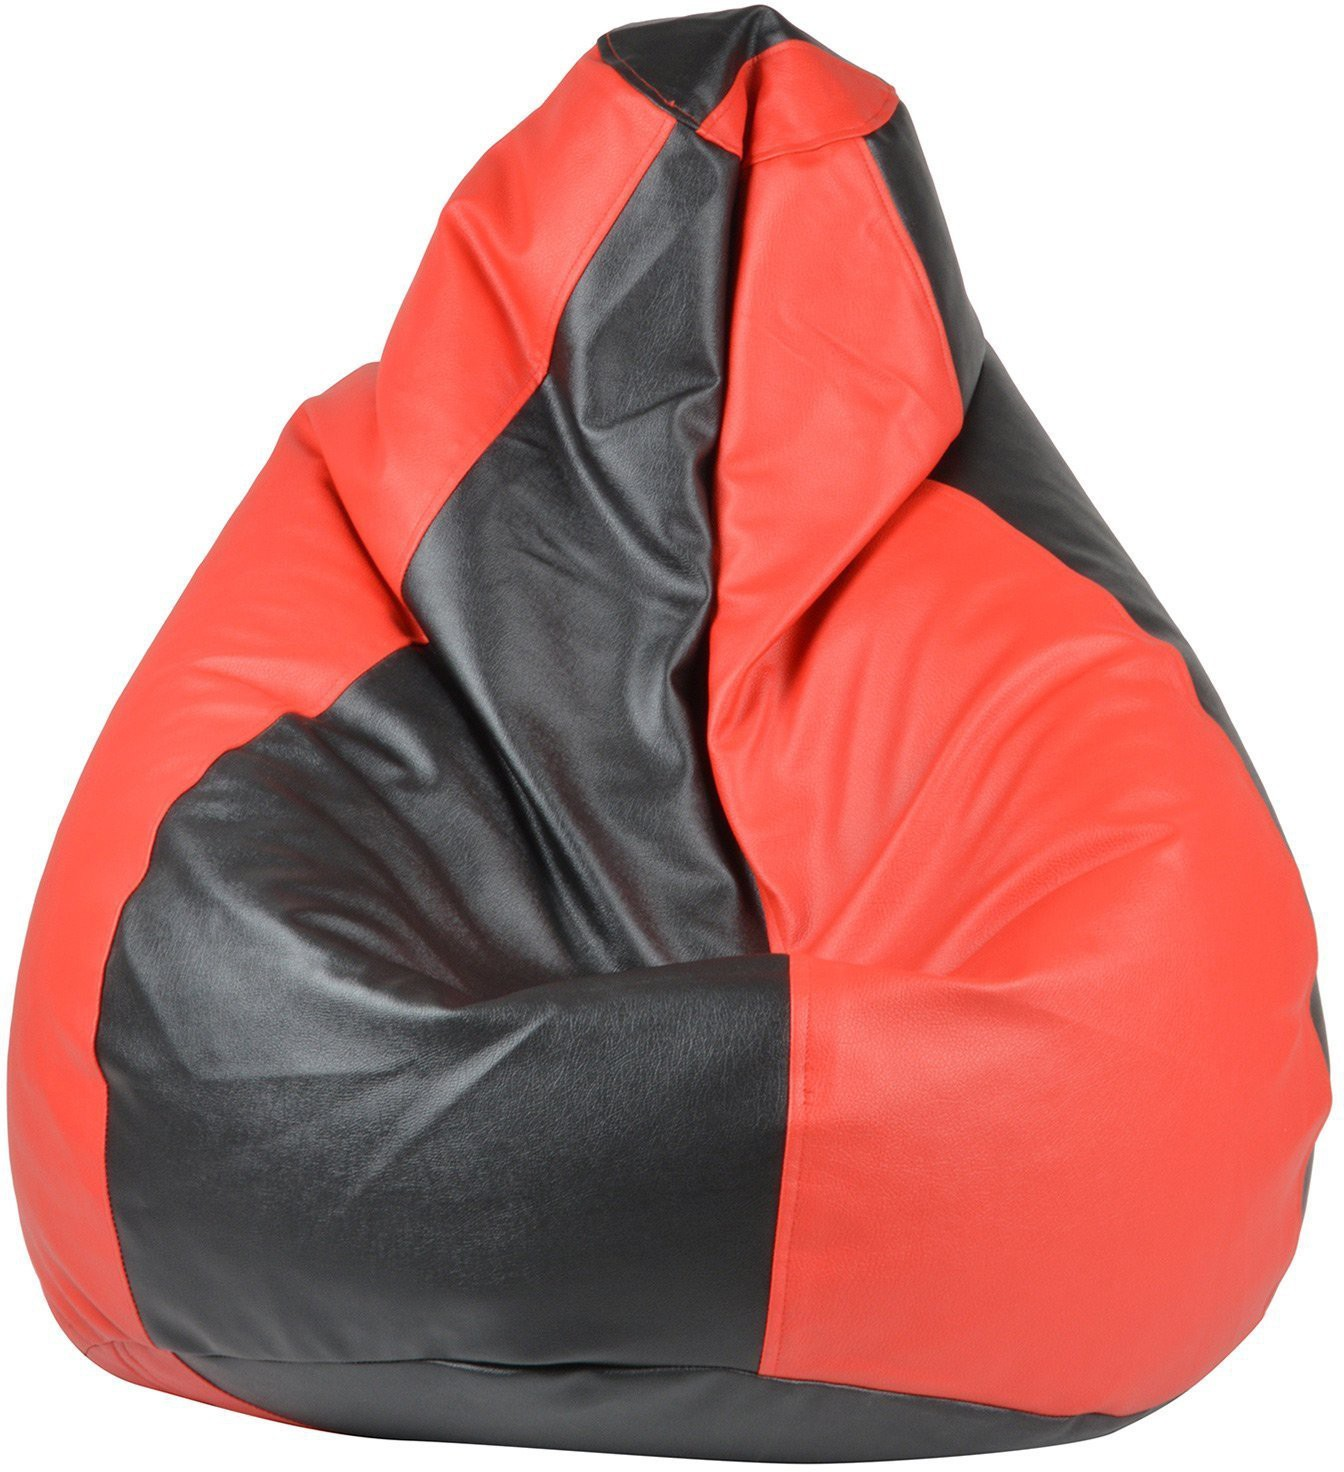 View Galaxy Decorz XL Bean Bag Cover(Black, Red) Furniture (Galaxy Decorz)